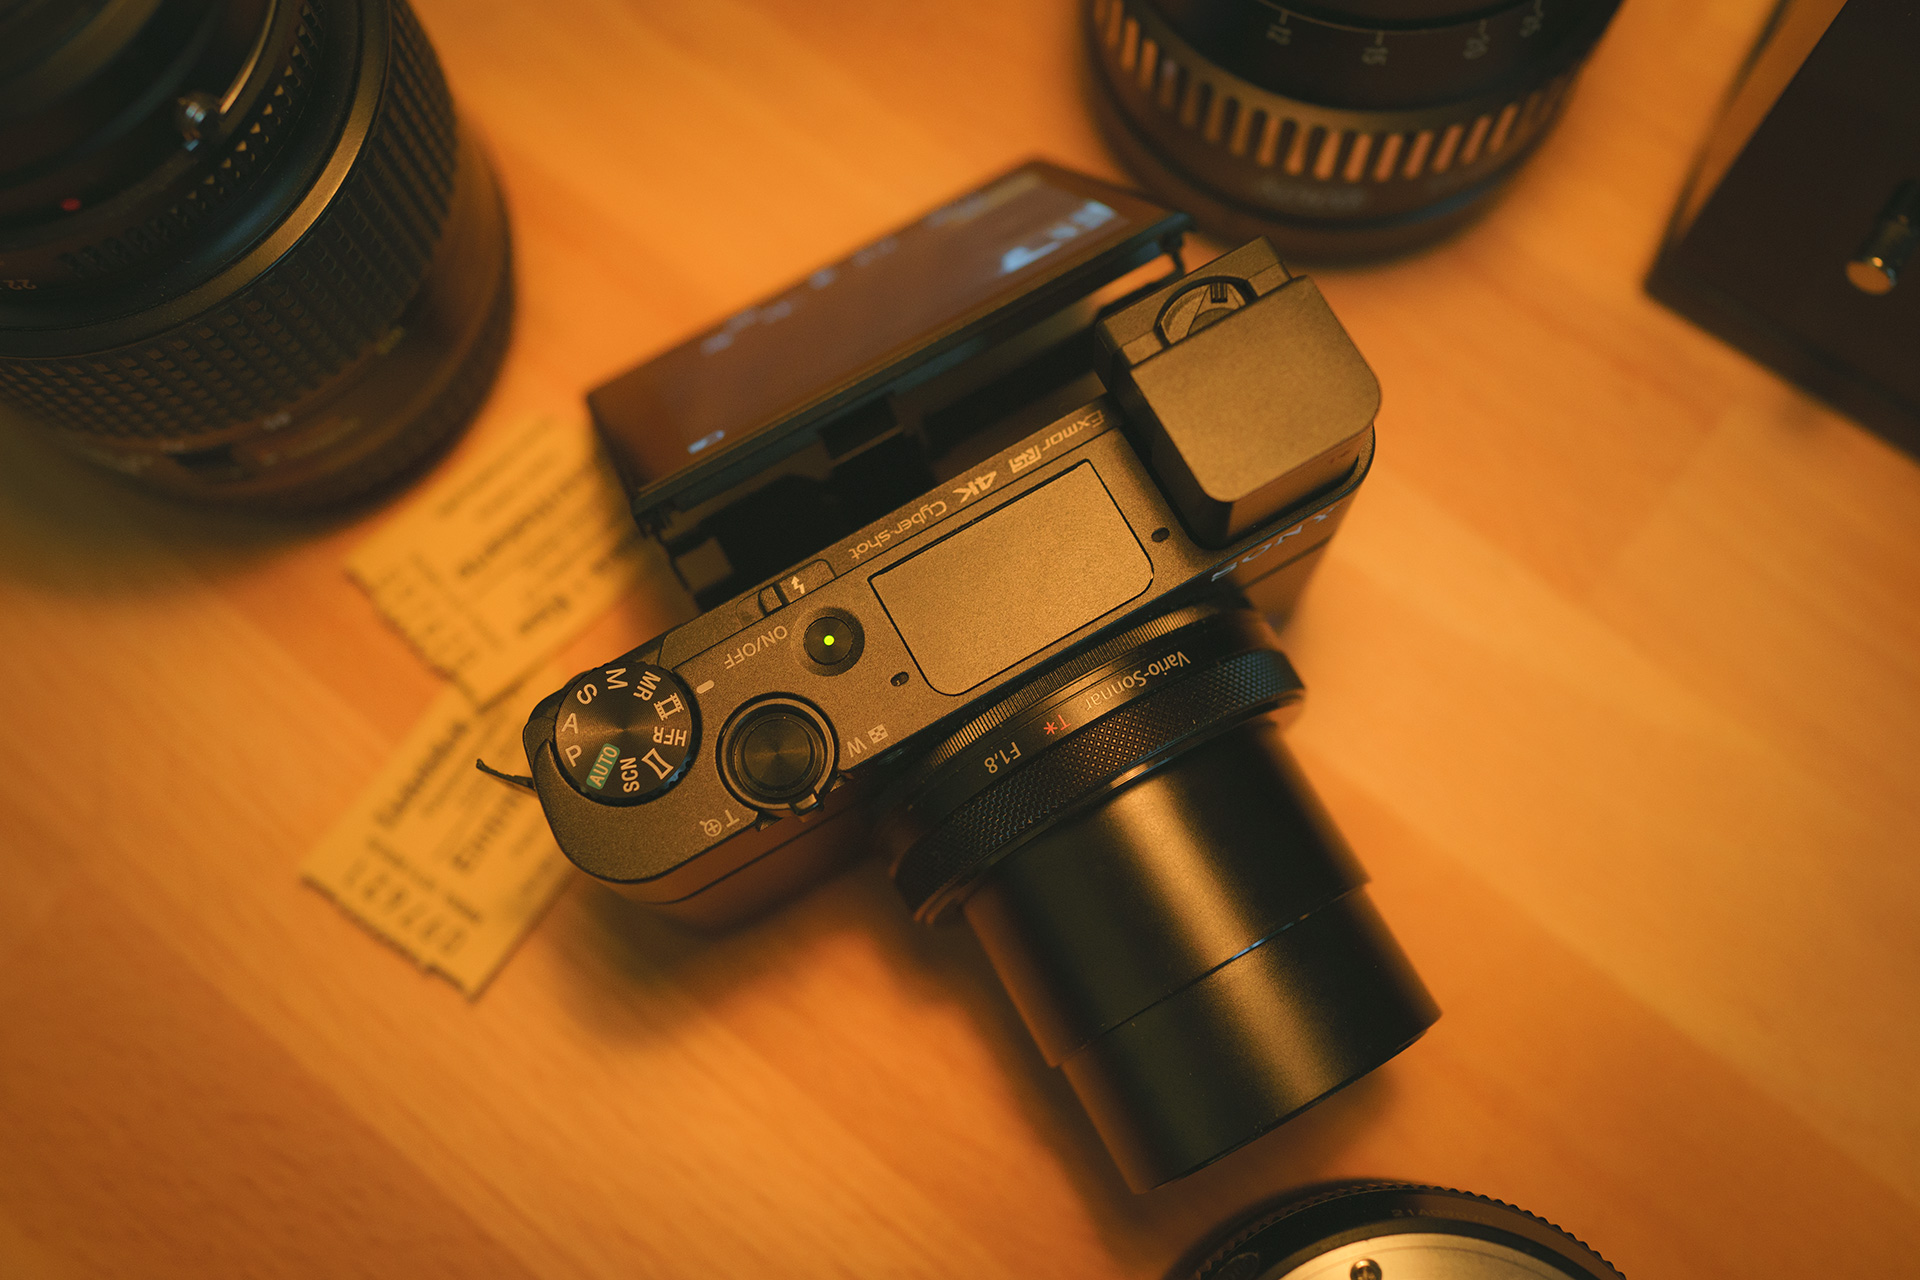 Sony RX100 IV review - with 1080p this good, 4K is merely a bonus